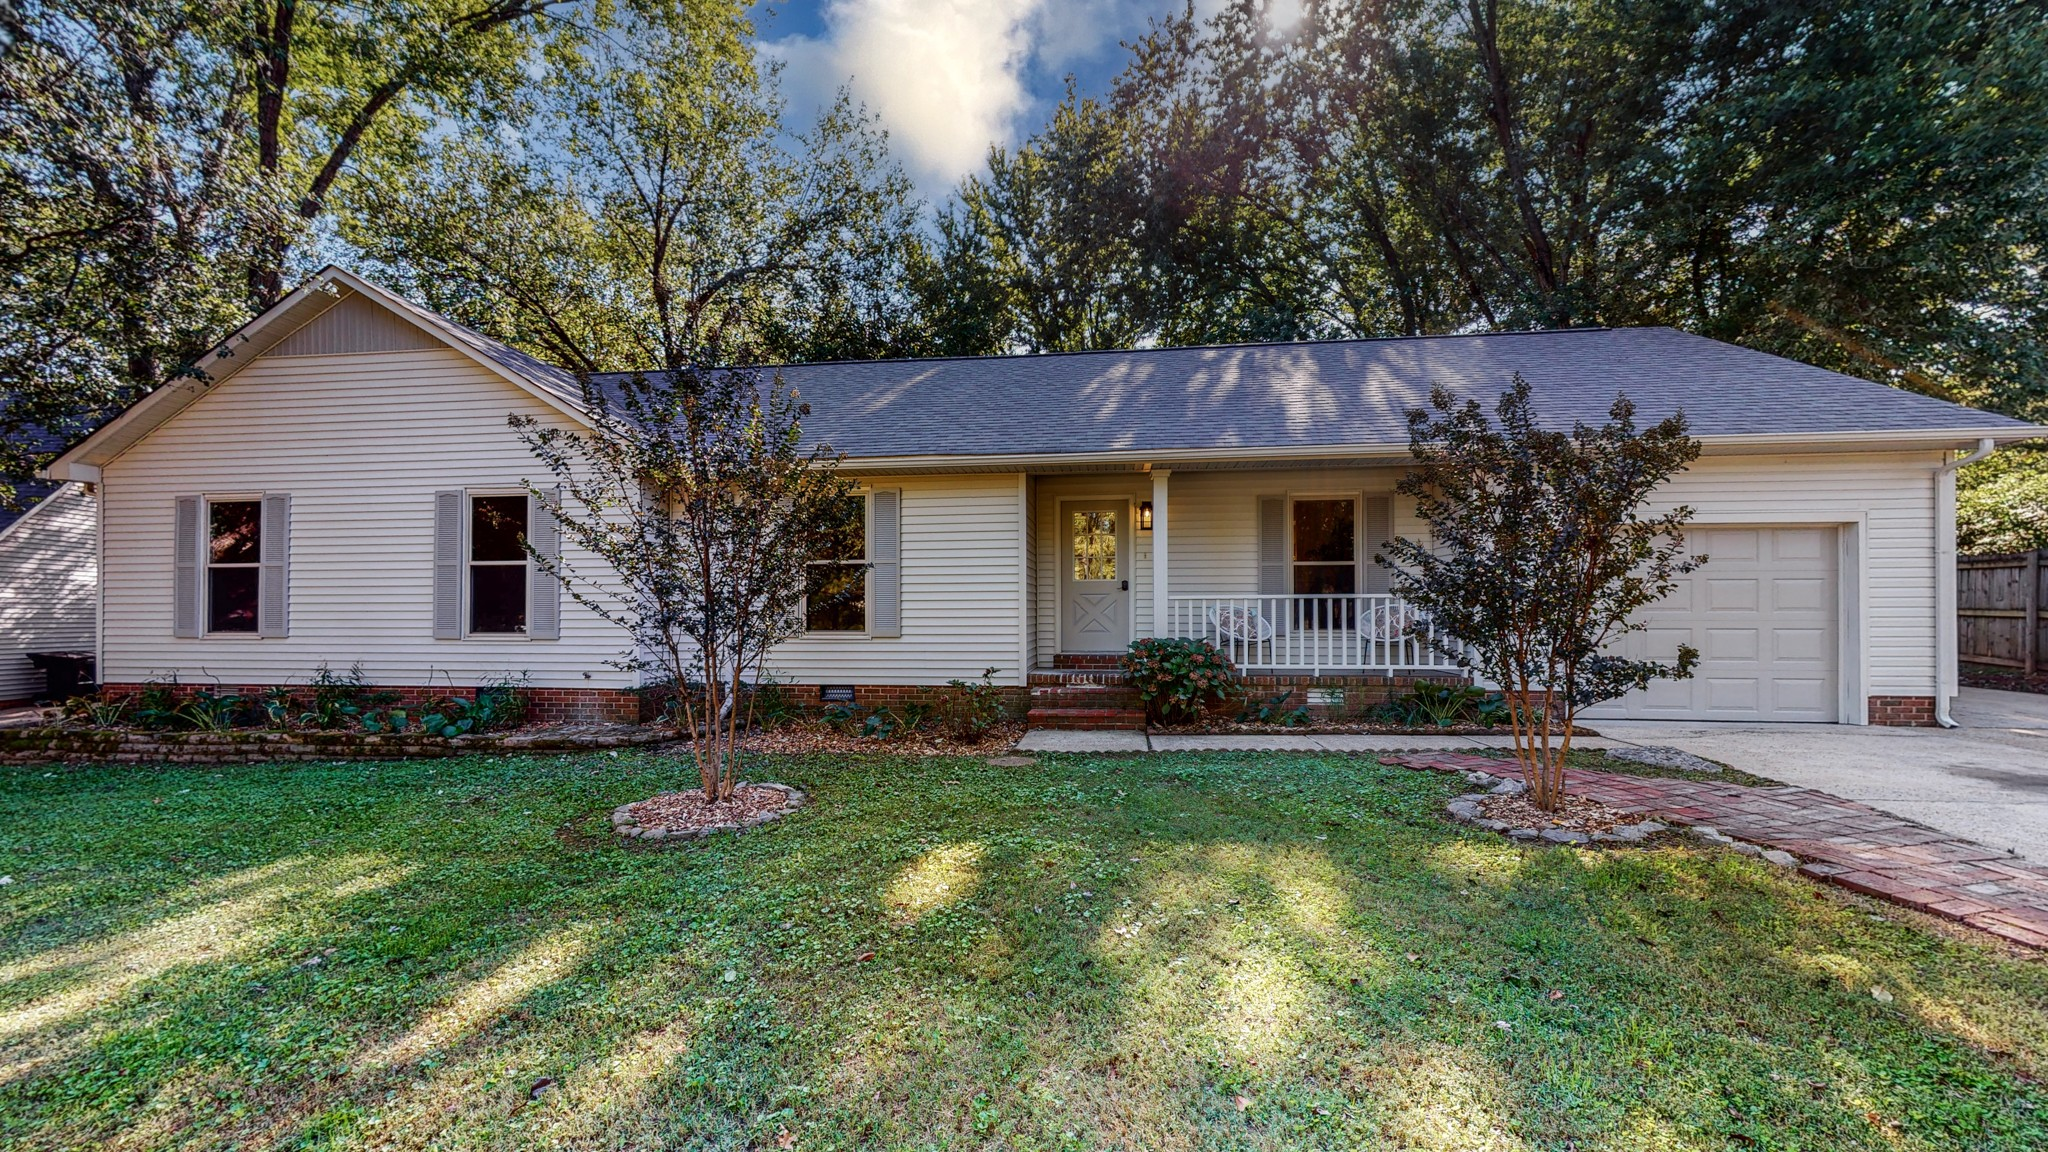 Offers Due Monday, October 25 at 1 p.m. Completely Renovated 4 Bed/2 Bath Home in the Heart of Franklin! Open Kitchen/Living Room with Exposed Beams, Built-In Shelving, Wood Burning Fireplace, New Kitchen with Quartz Countertops, New Bathrooms with Marble Countertops, Double Vanities, Primary Suite with Walk-In Closet, Large Mudroom/Laundry Room, 1-Car Garage. Screened-In Porch Overlooking Oversized Private Fenced-In Backyard with Firepit. Minutes to I-65, Downtown Franklin, Restaurants, Shops!